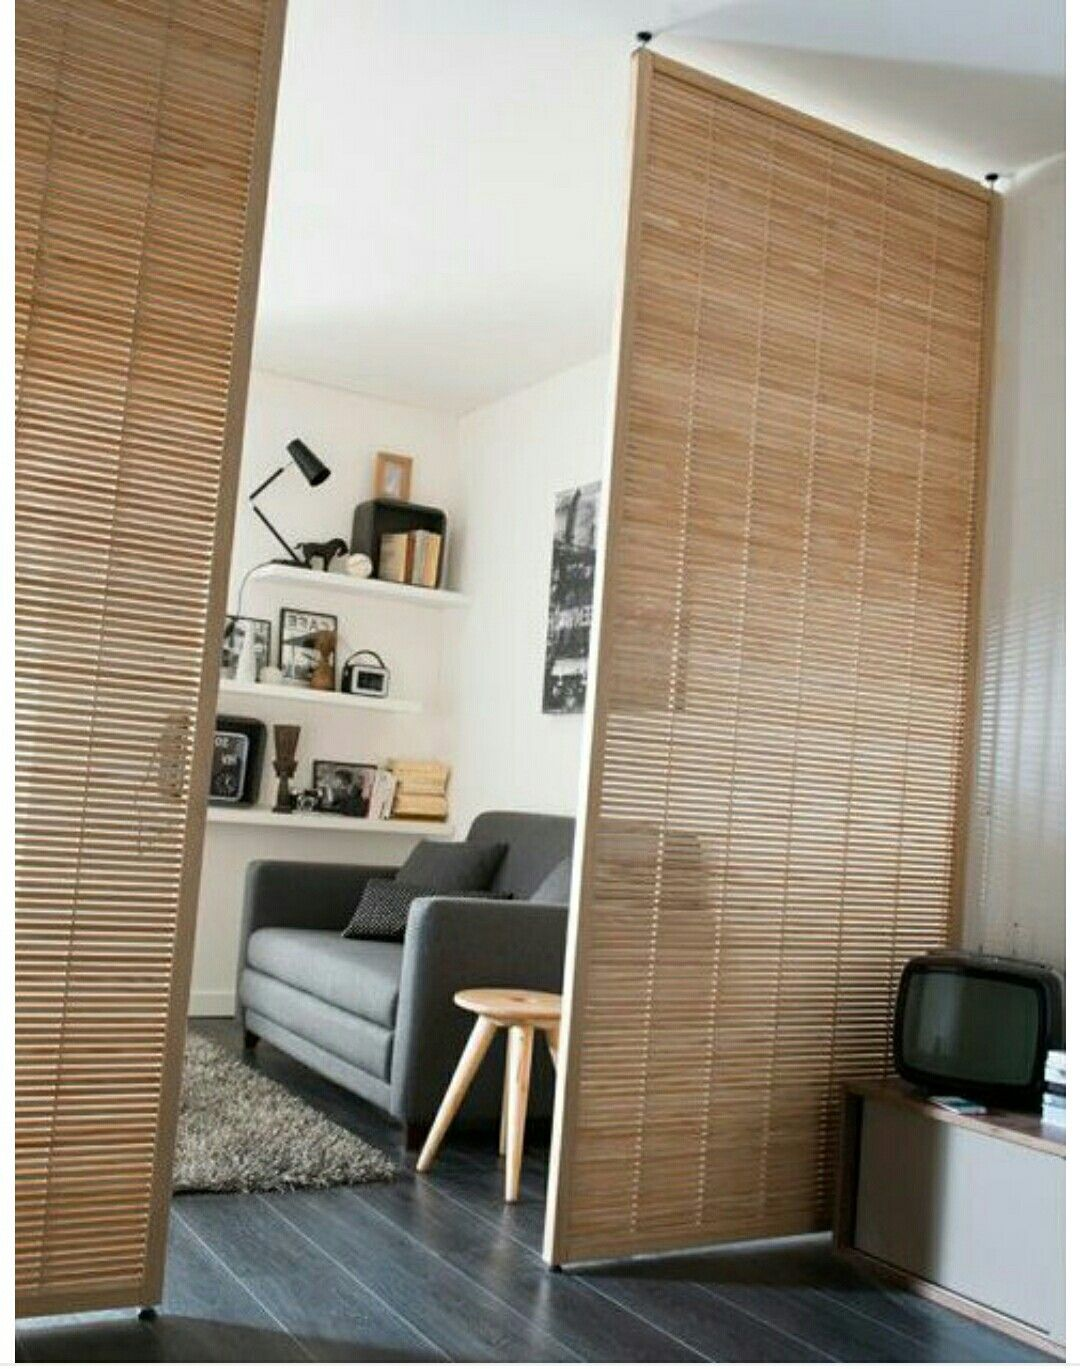 Pin By Jaapa On Home Ideas Apartment Inspiration Apartment Design Bedroom Divider